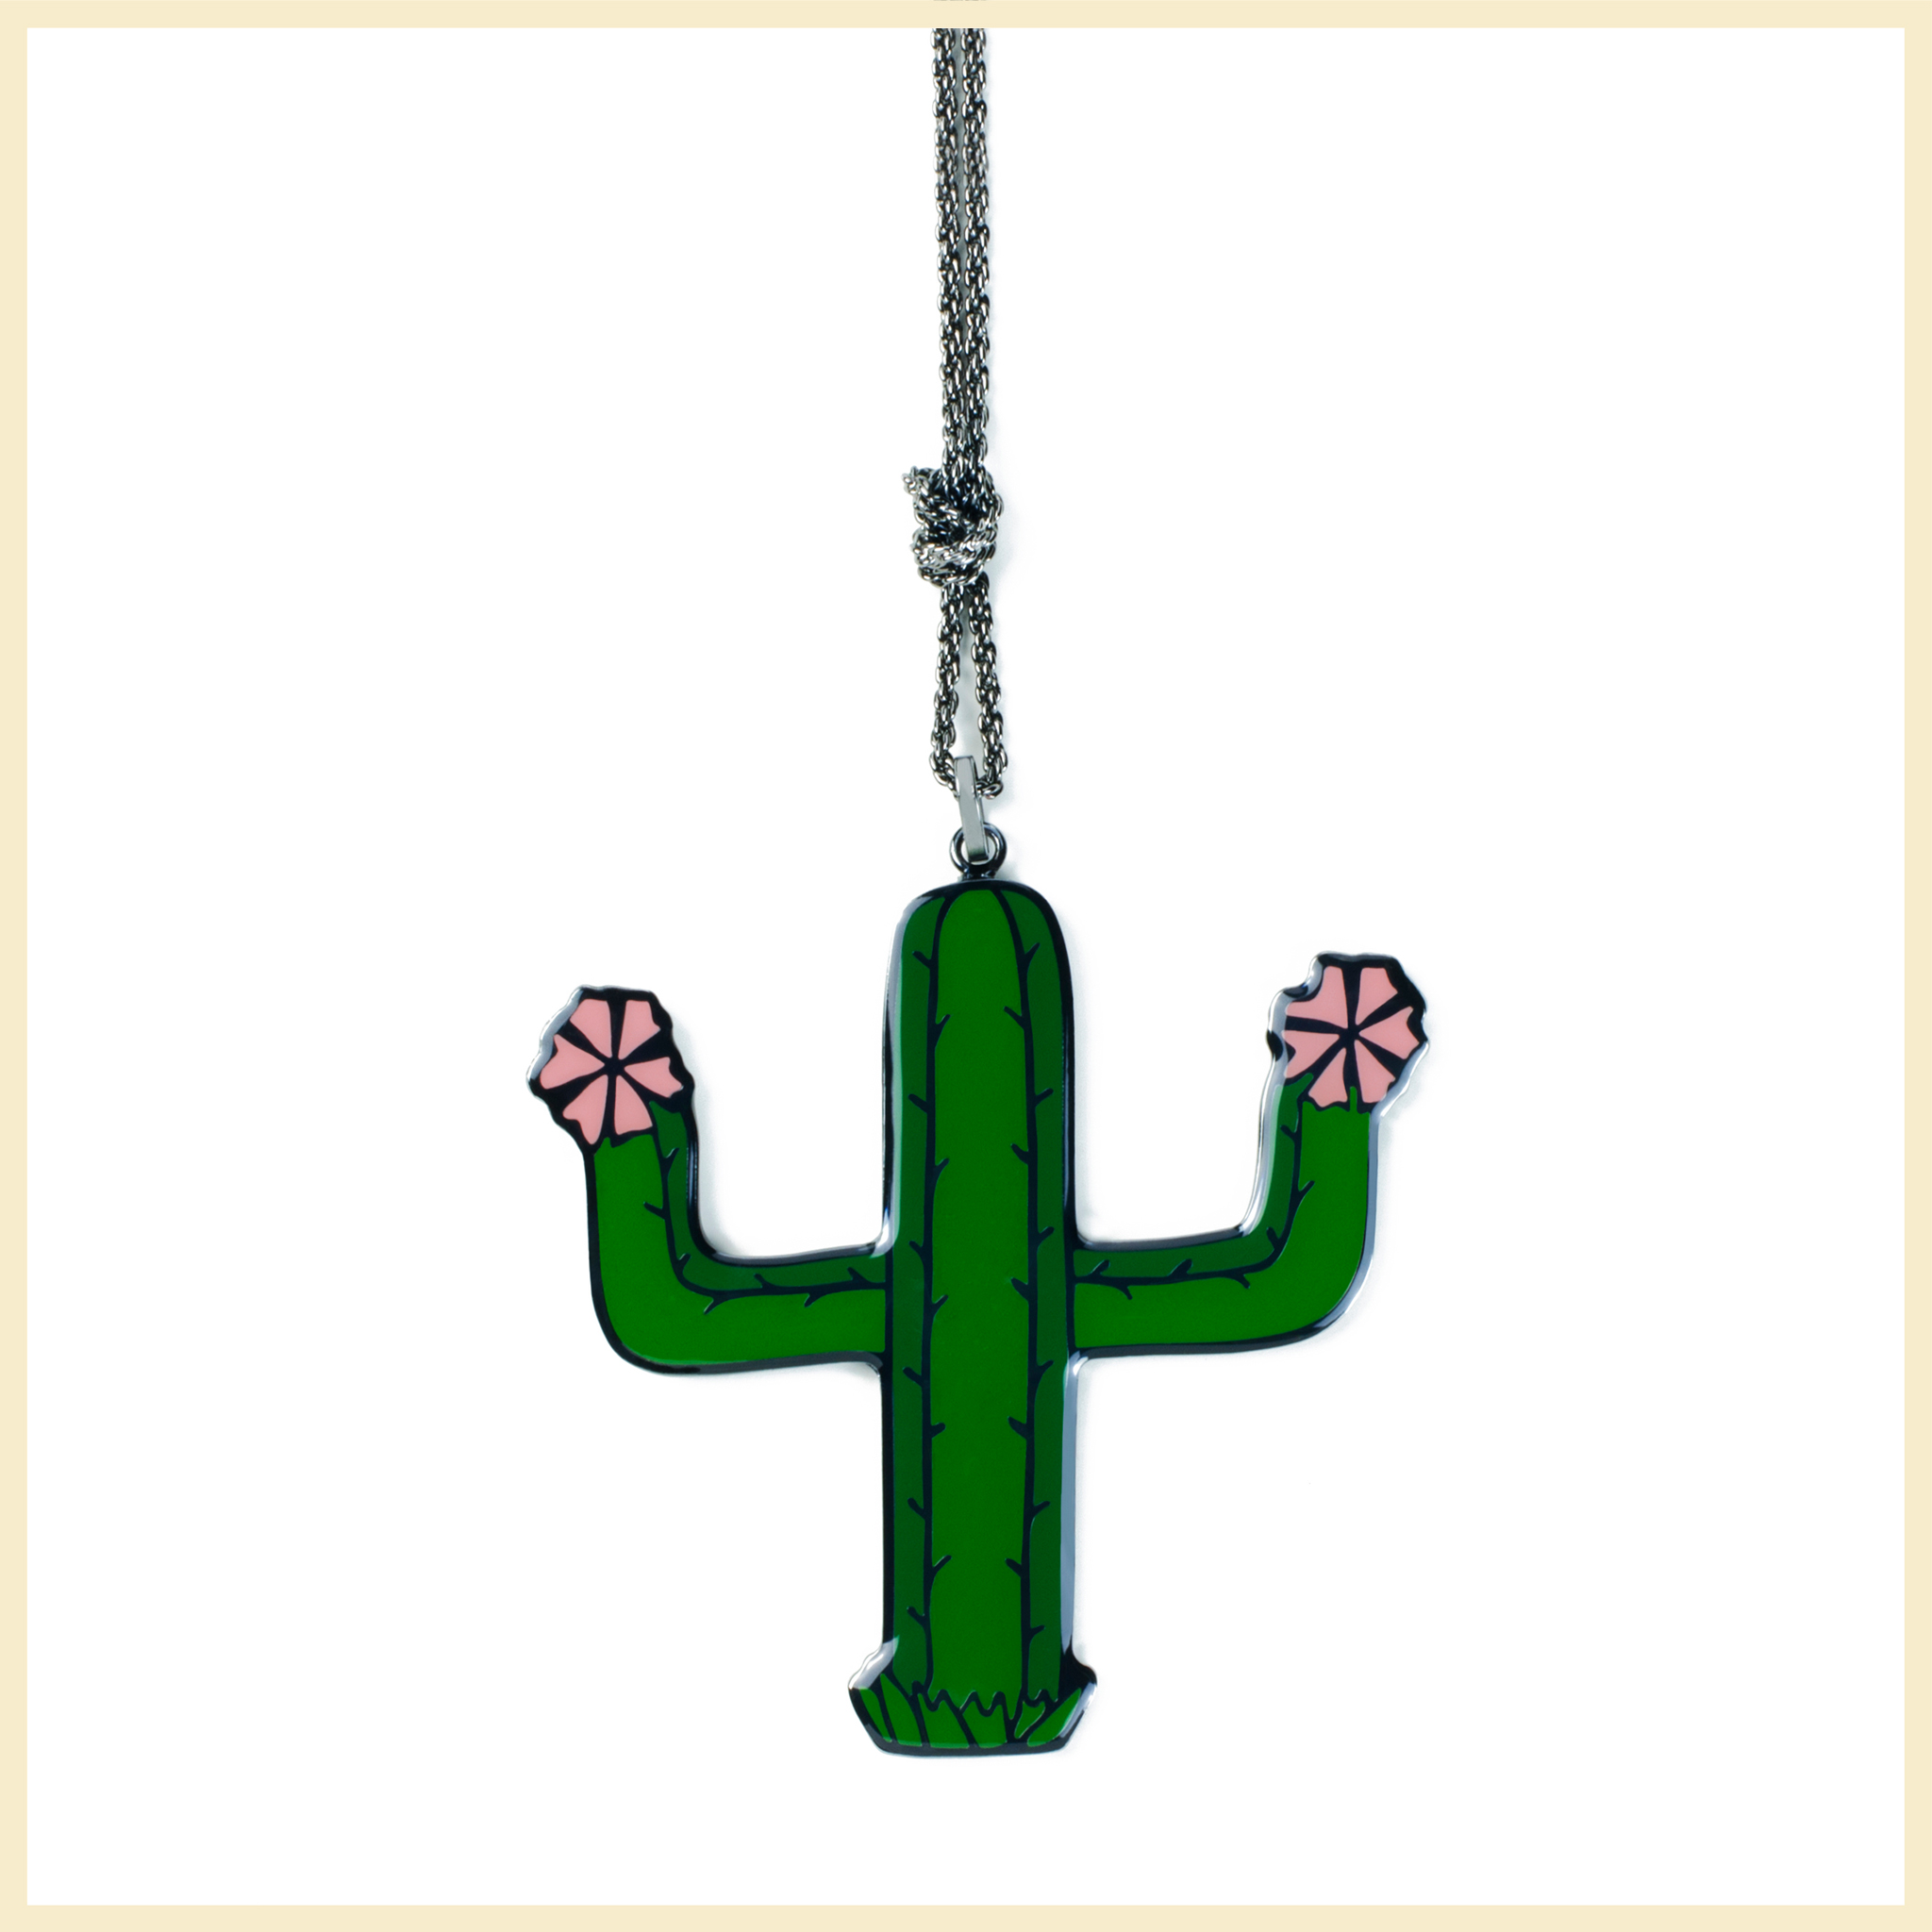 cactus-necklace-cordien-bijoux-jewel-1.jpg